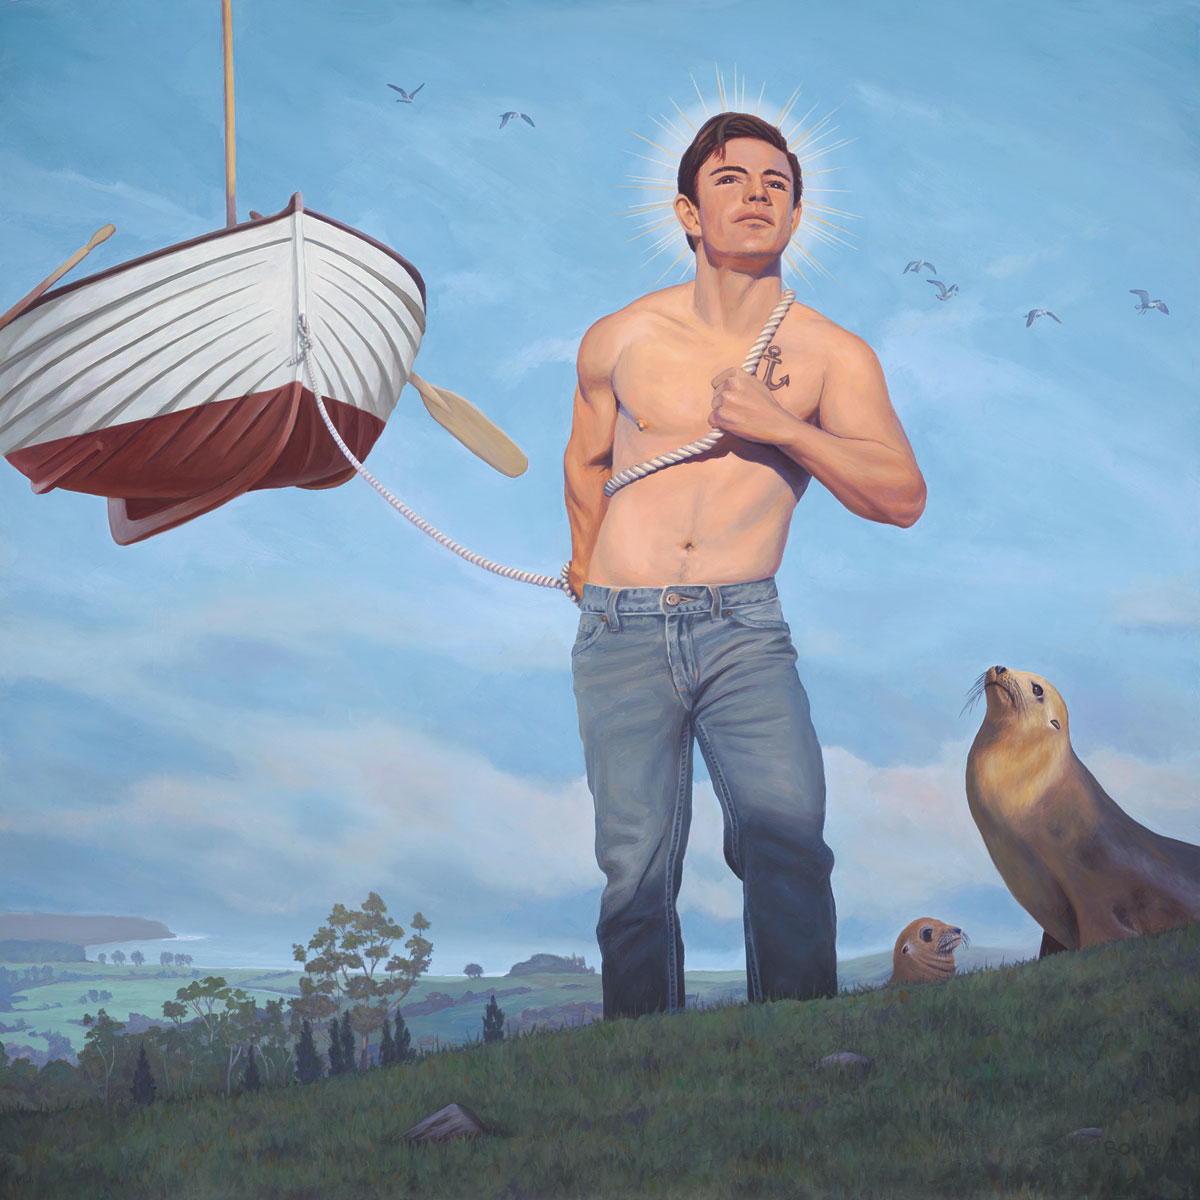 Daniel, Patron Saint of Wayward Mariners, painting of a man pulling a floating boat, allegory, time, illusion, boy, saint, hero, sky, water, ocean, seal, sea lion, birds, floating, waves, wings, boat, love, strong, transformation, desire, power, strength, wisdom, kindness, natural, trompe l'oeil, soulful uplifting inspirational art, soul stirring illusion art, romantic art,  surrealism, surreal art, dreamlike imagery, fanciful art, fantasy art, dreamscape visual, metaphysical art, spiritual painting, metaphysical painting, spiritual art, whimsical art, whimsy art, dream art, fantastic realism art, limited edition giclee, signed art print, fine art reproduction, original magic realism oil painting by Paul Bond